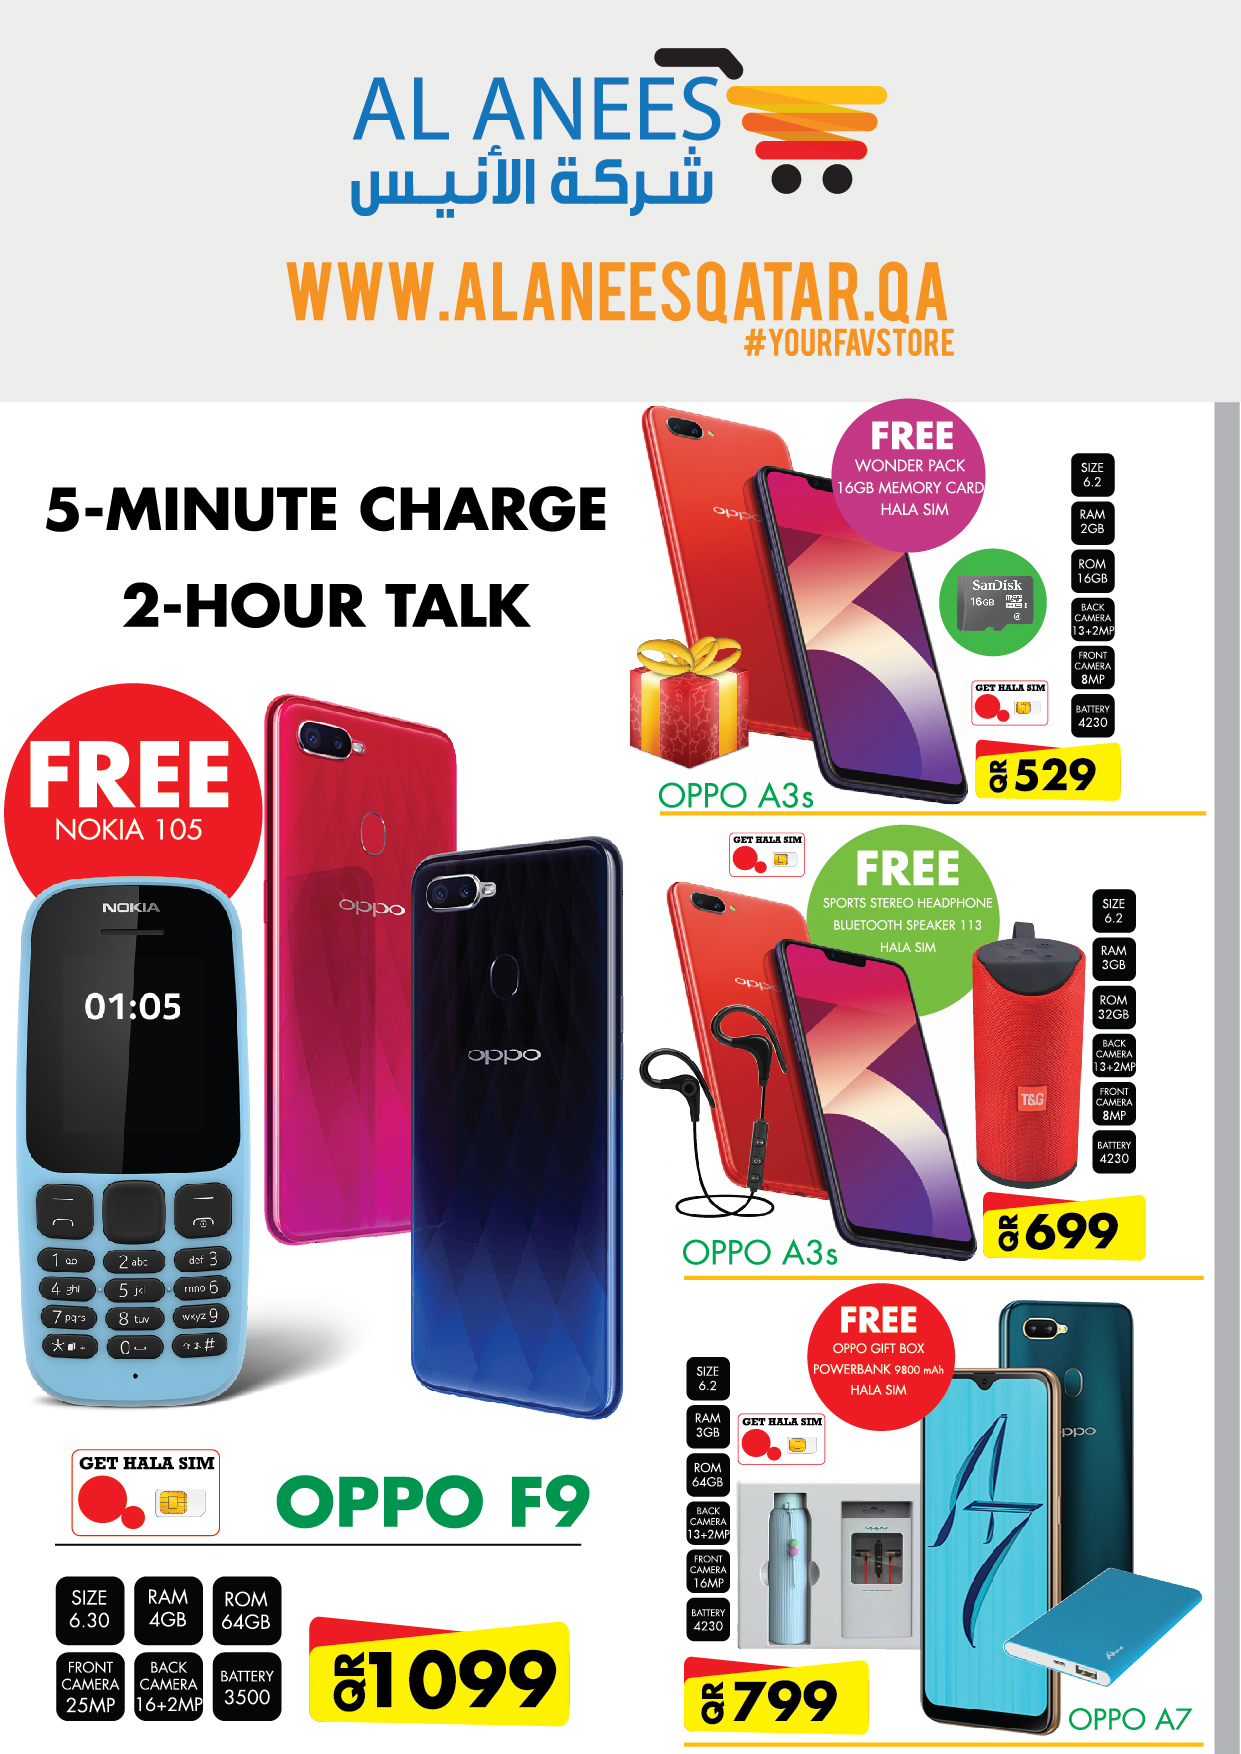 Alanees weekend promotion 25/04/2019